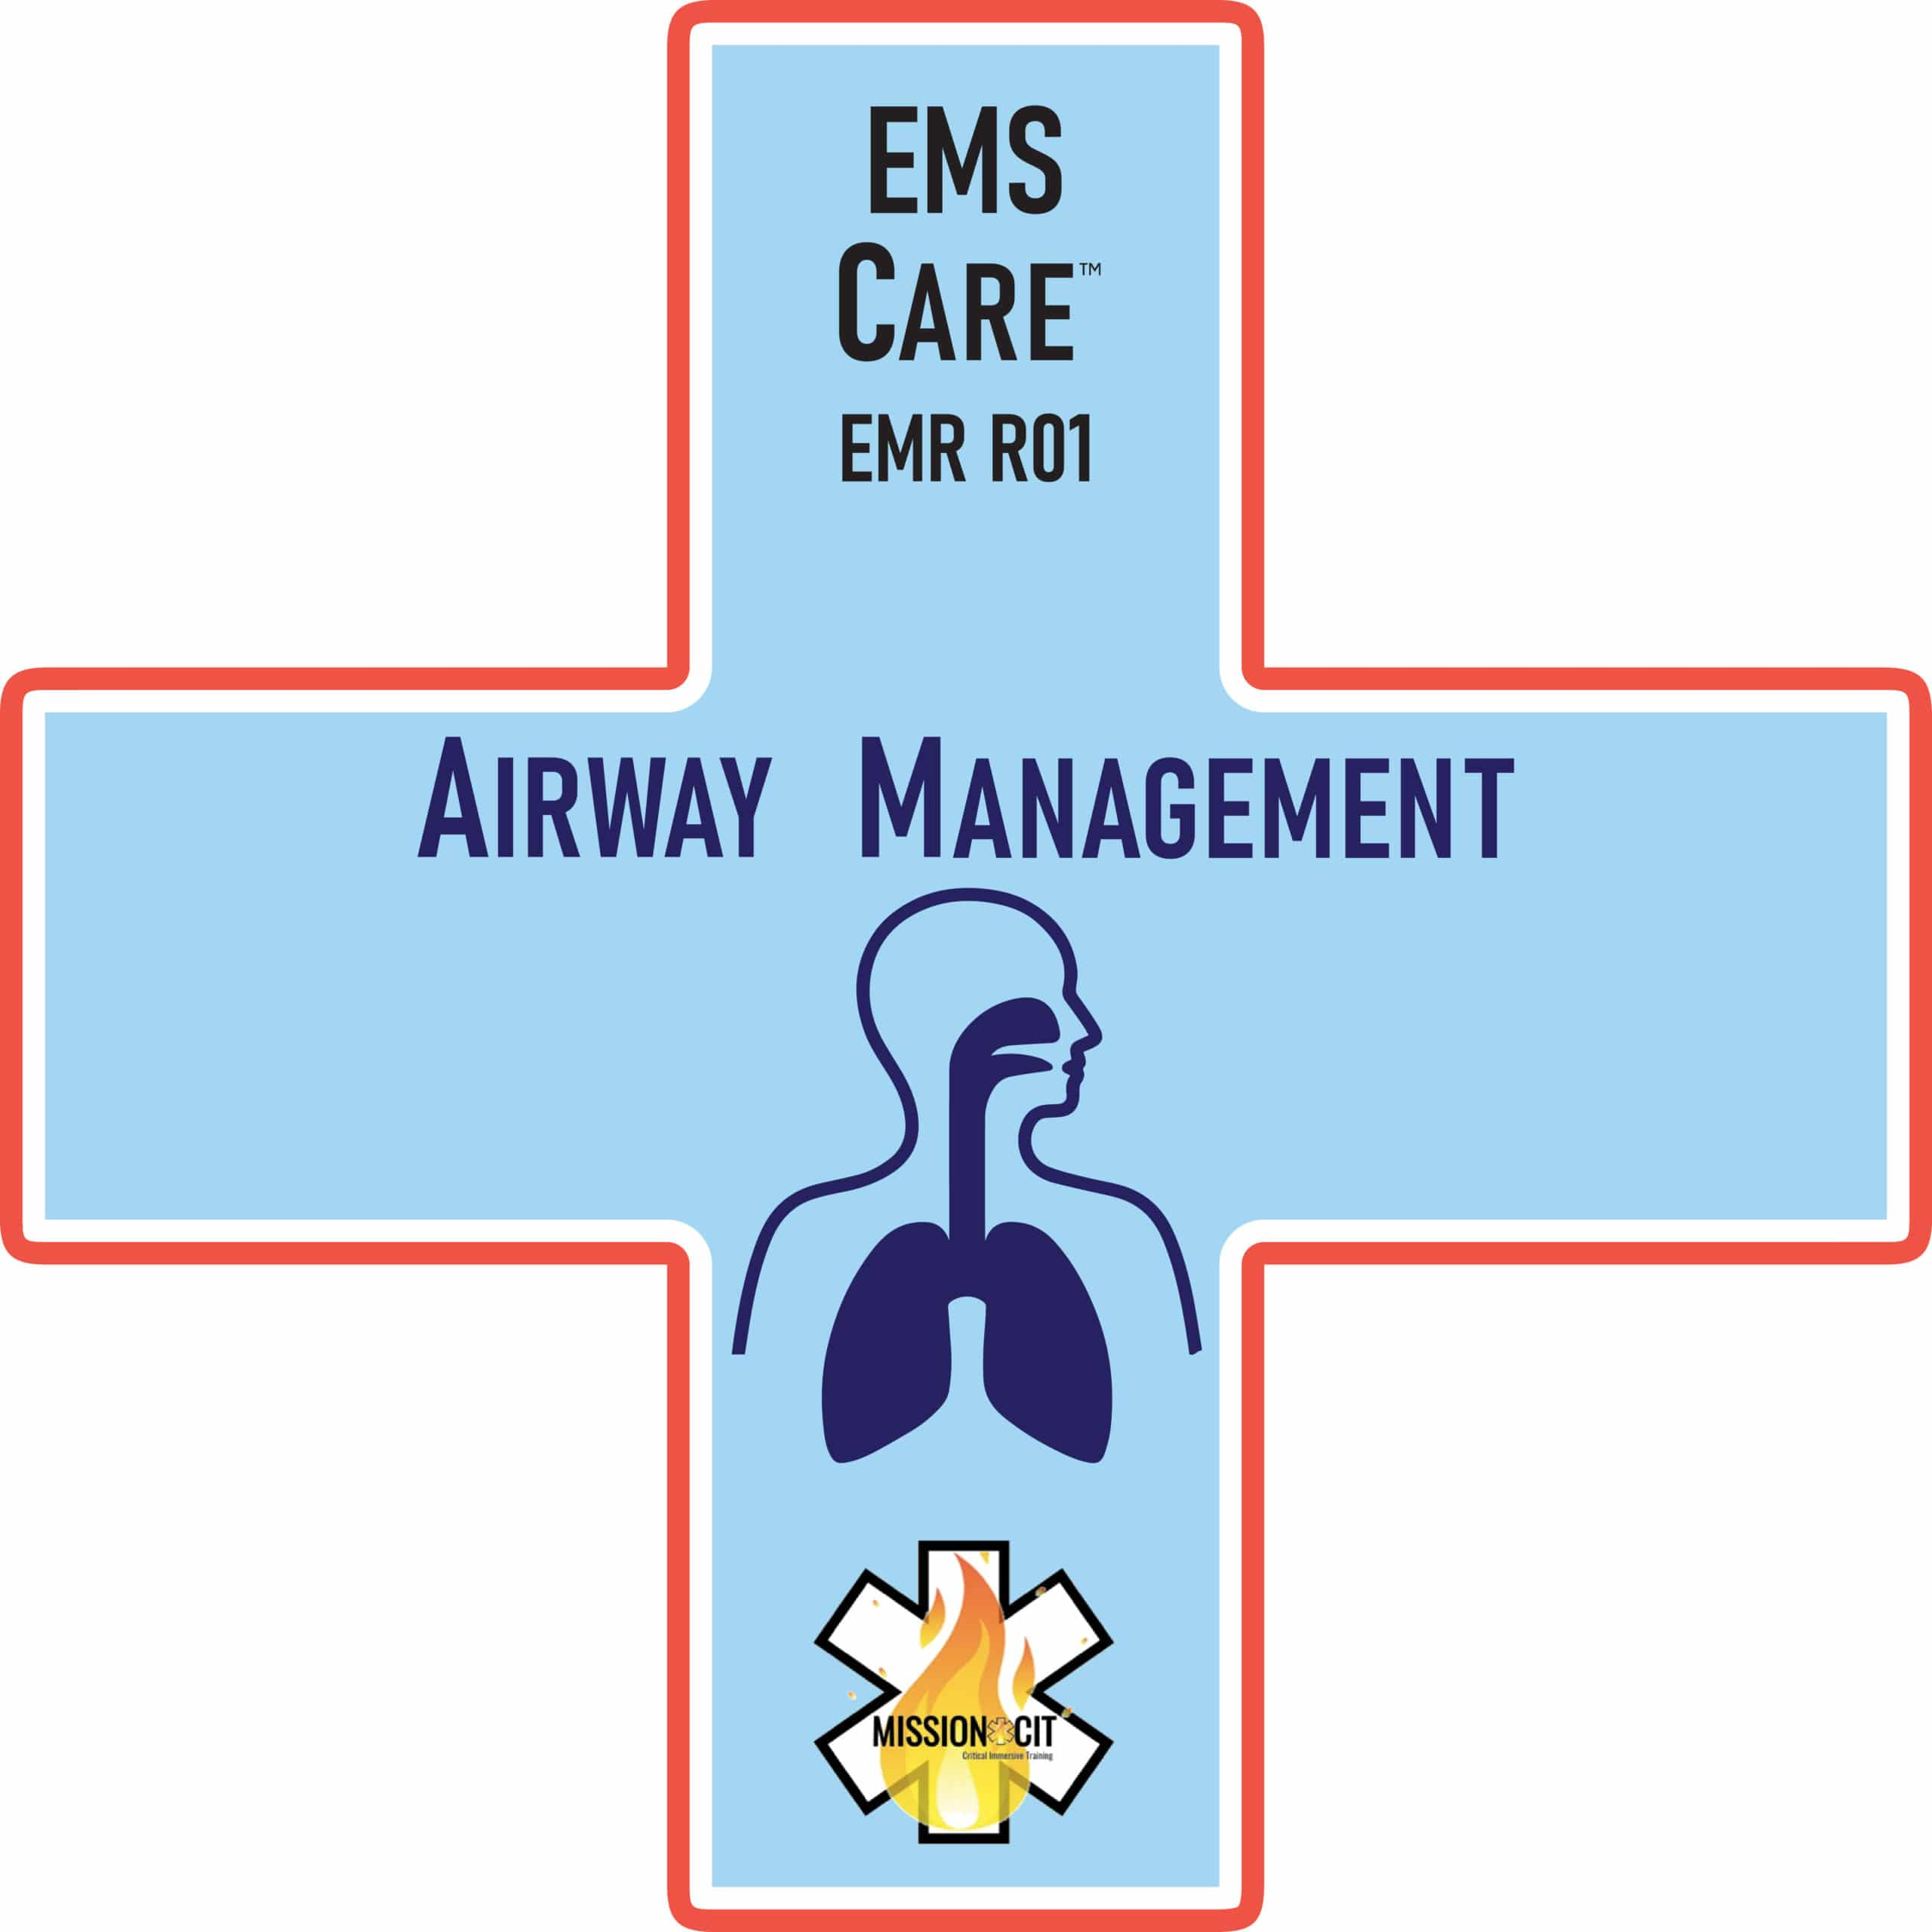 EMR Training | Airway Management | Chapter EMR-R01 | Principles of Airway Management and Ventilation for the Emergency Medical Responder